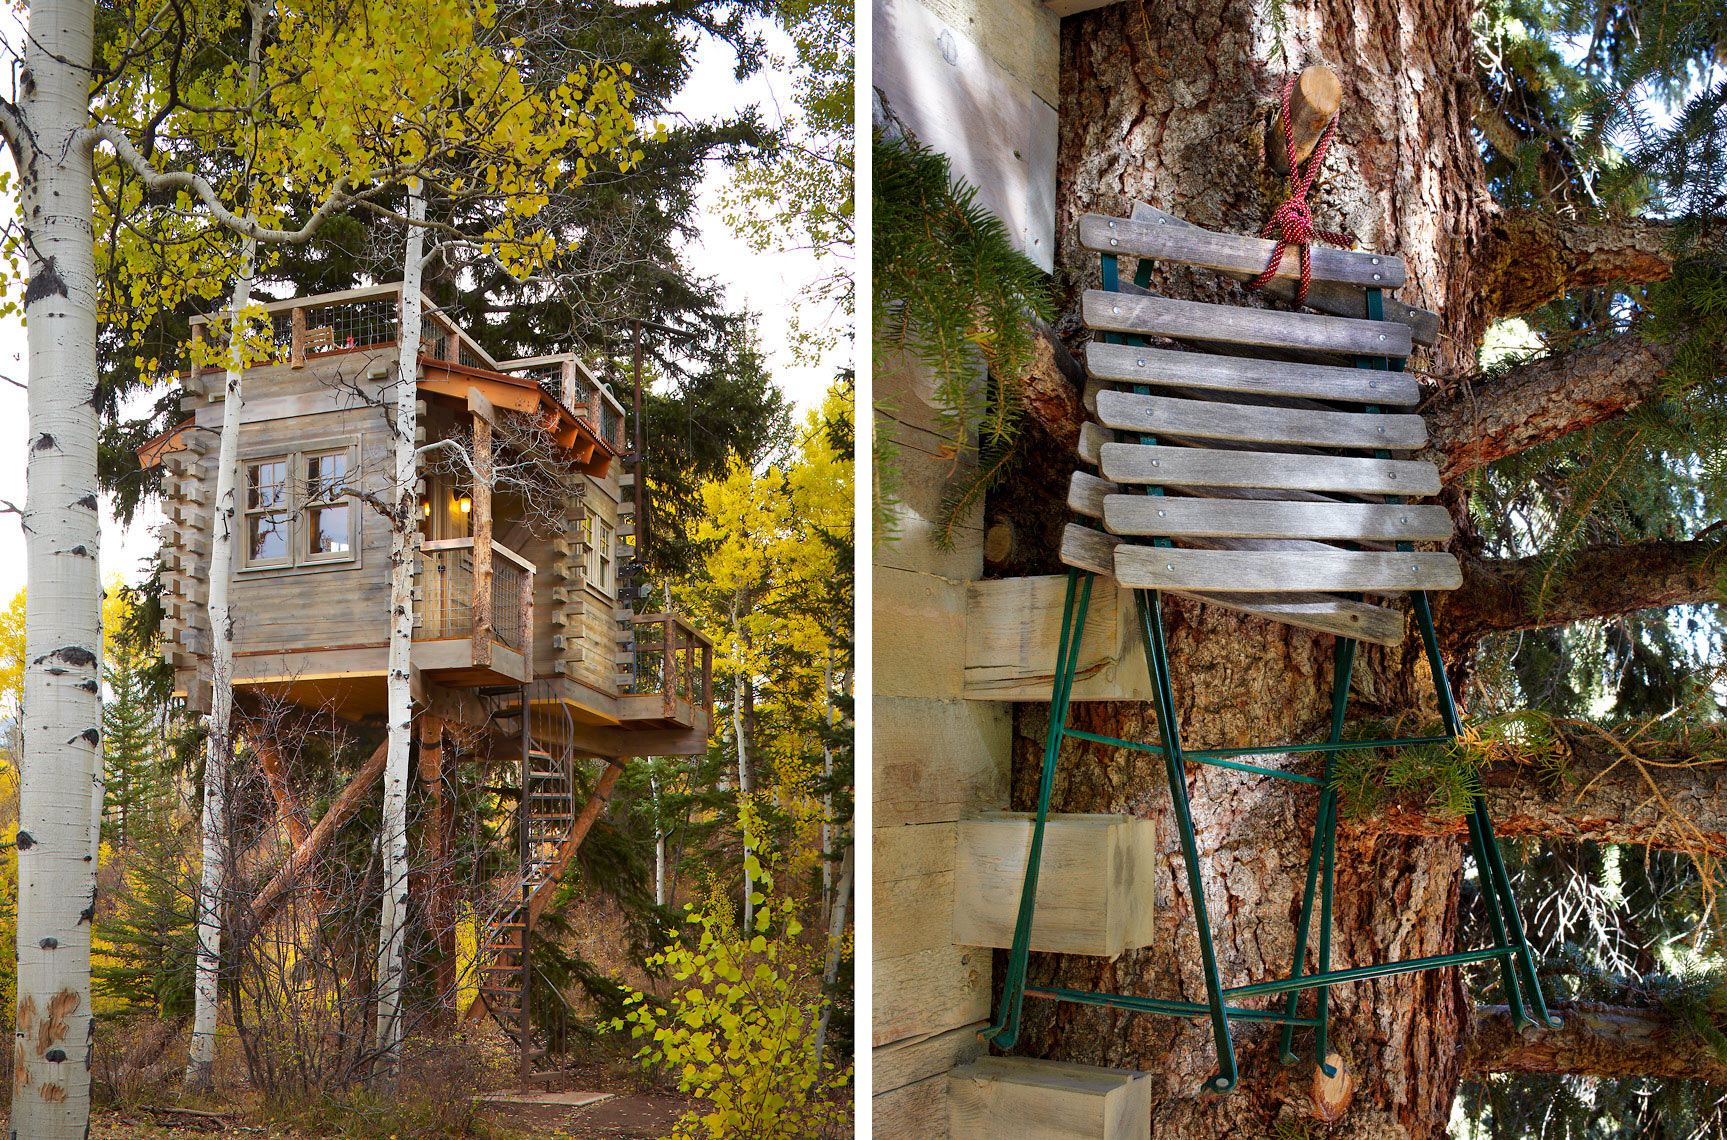 Colorado Treehouse David Patterson Photographer of Architecture + Interiors, Denver, Colorado, Steamboat Springs, Vail, Aspen